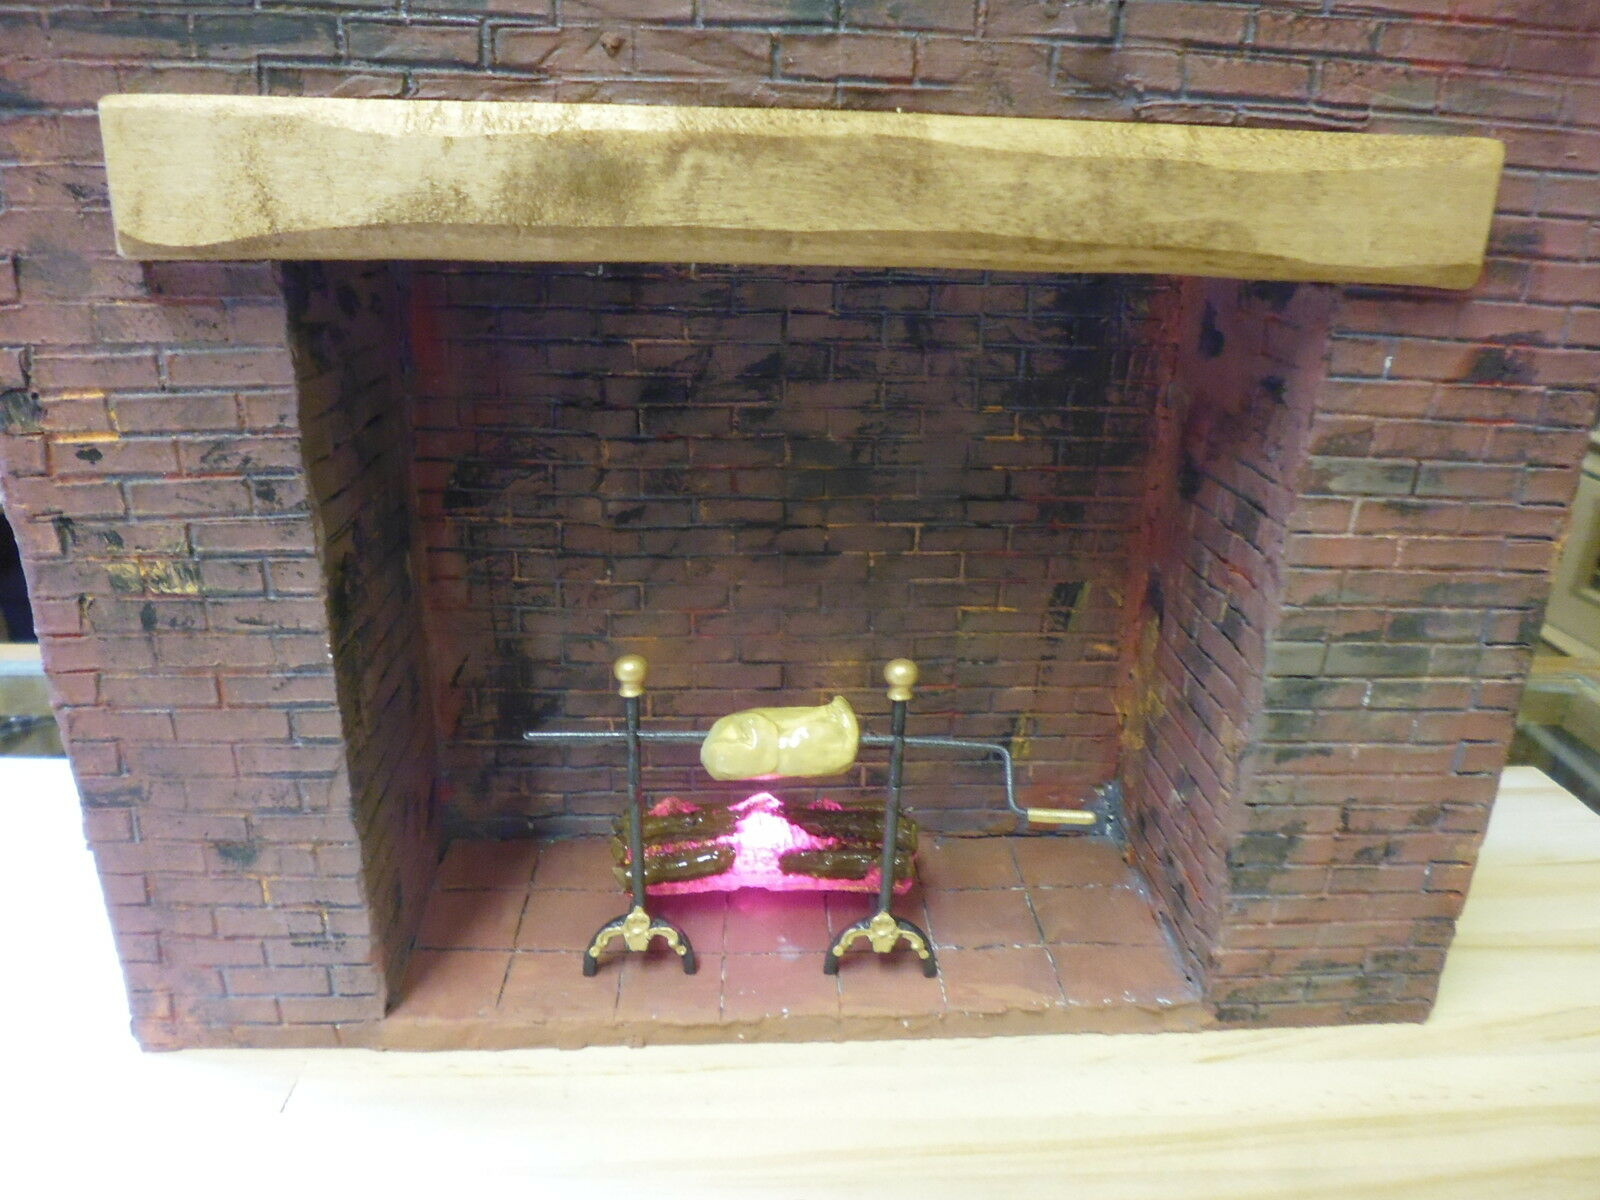 1 12 Dolls House   Fireplace surround with Log Fire. Brick.  Lights Up